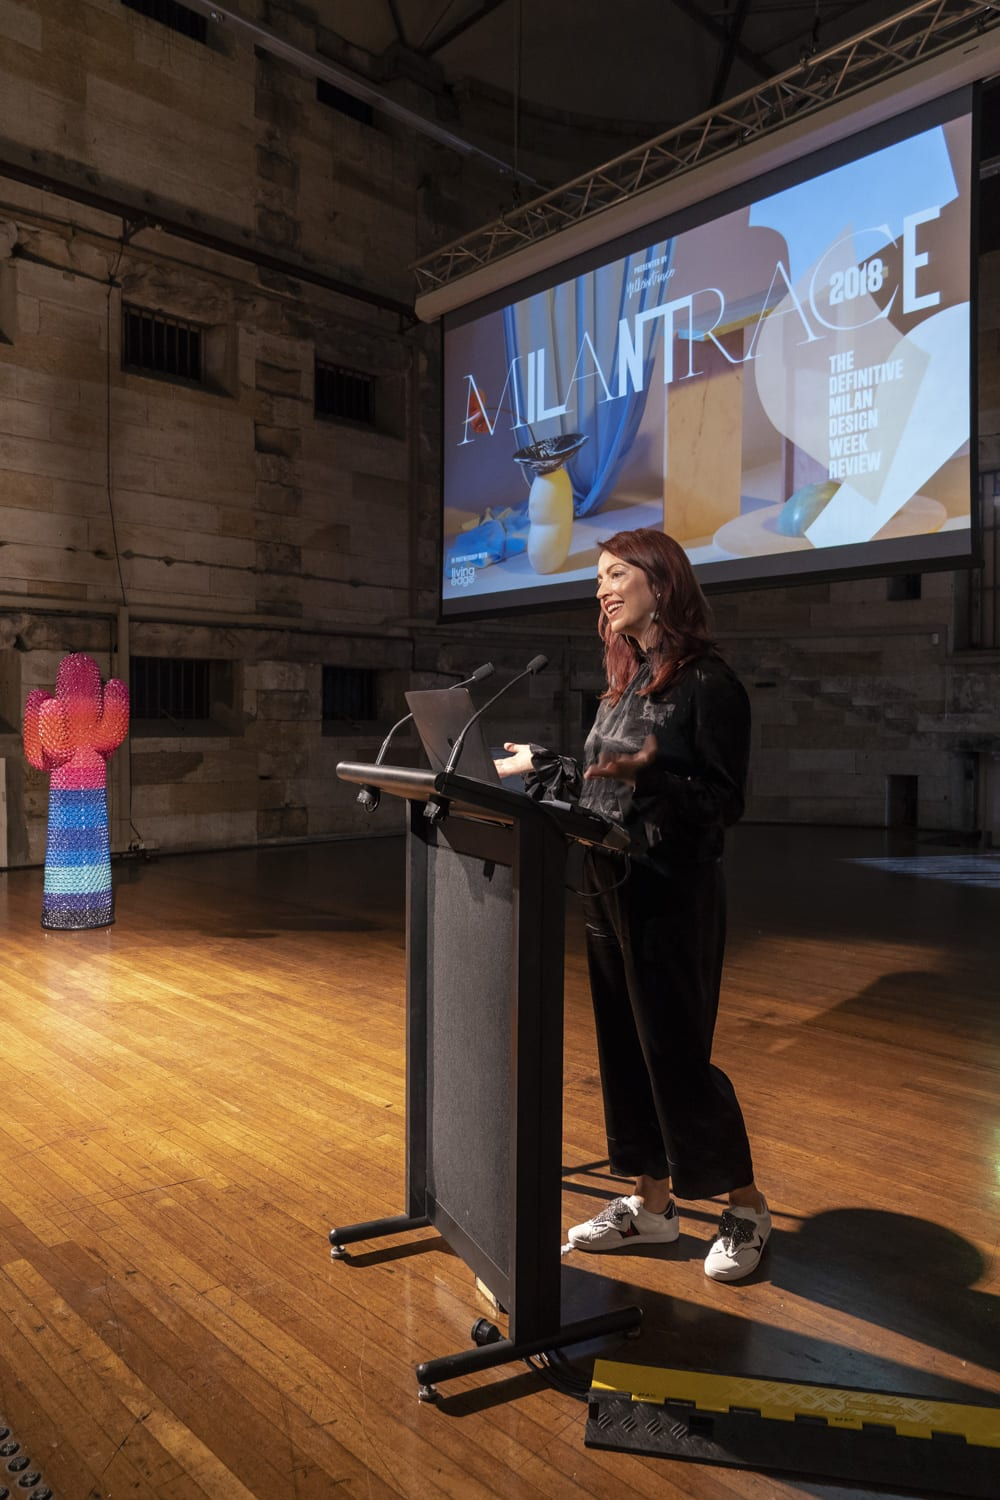 Dana Tomic Hughes presenting Milantrace 2018 Sydney Talk. Photo by Nick Hughes/ Yellowtrace